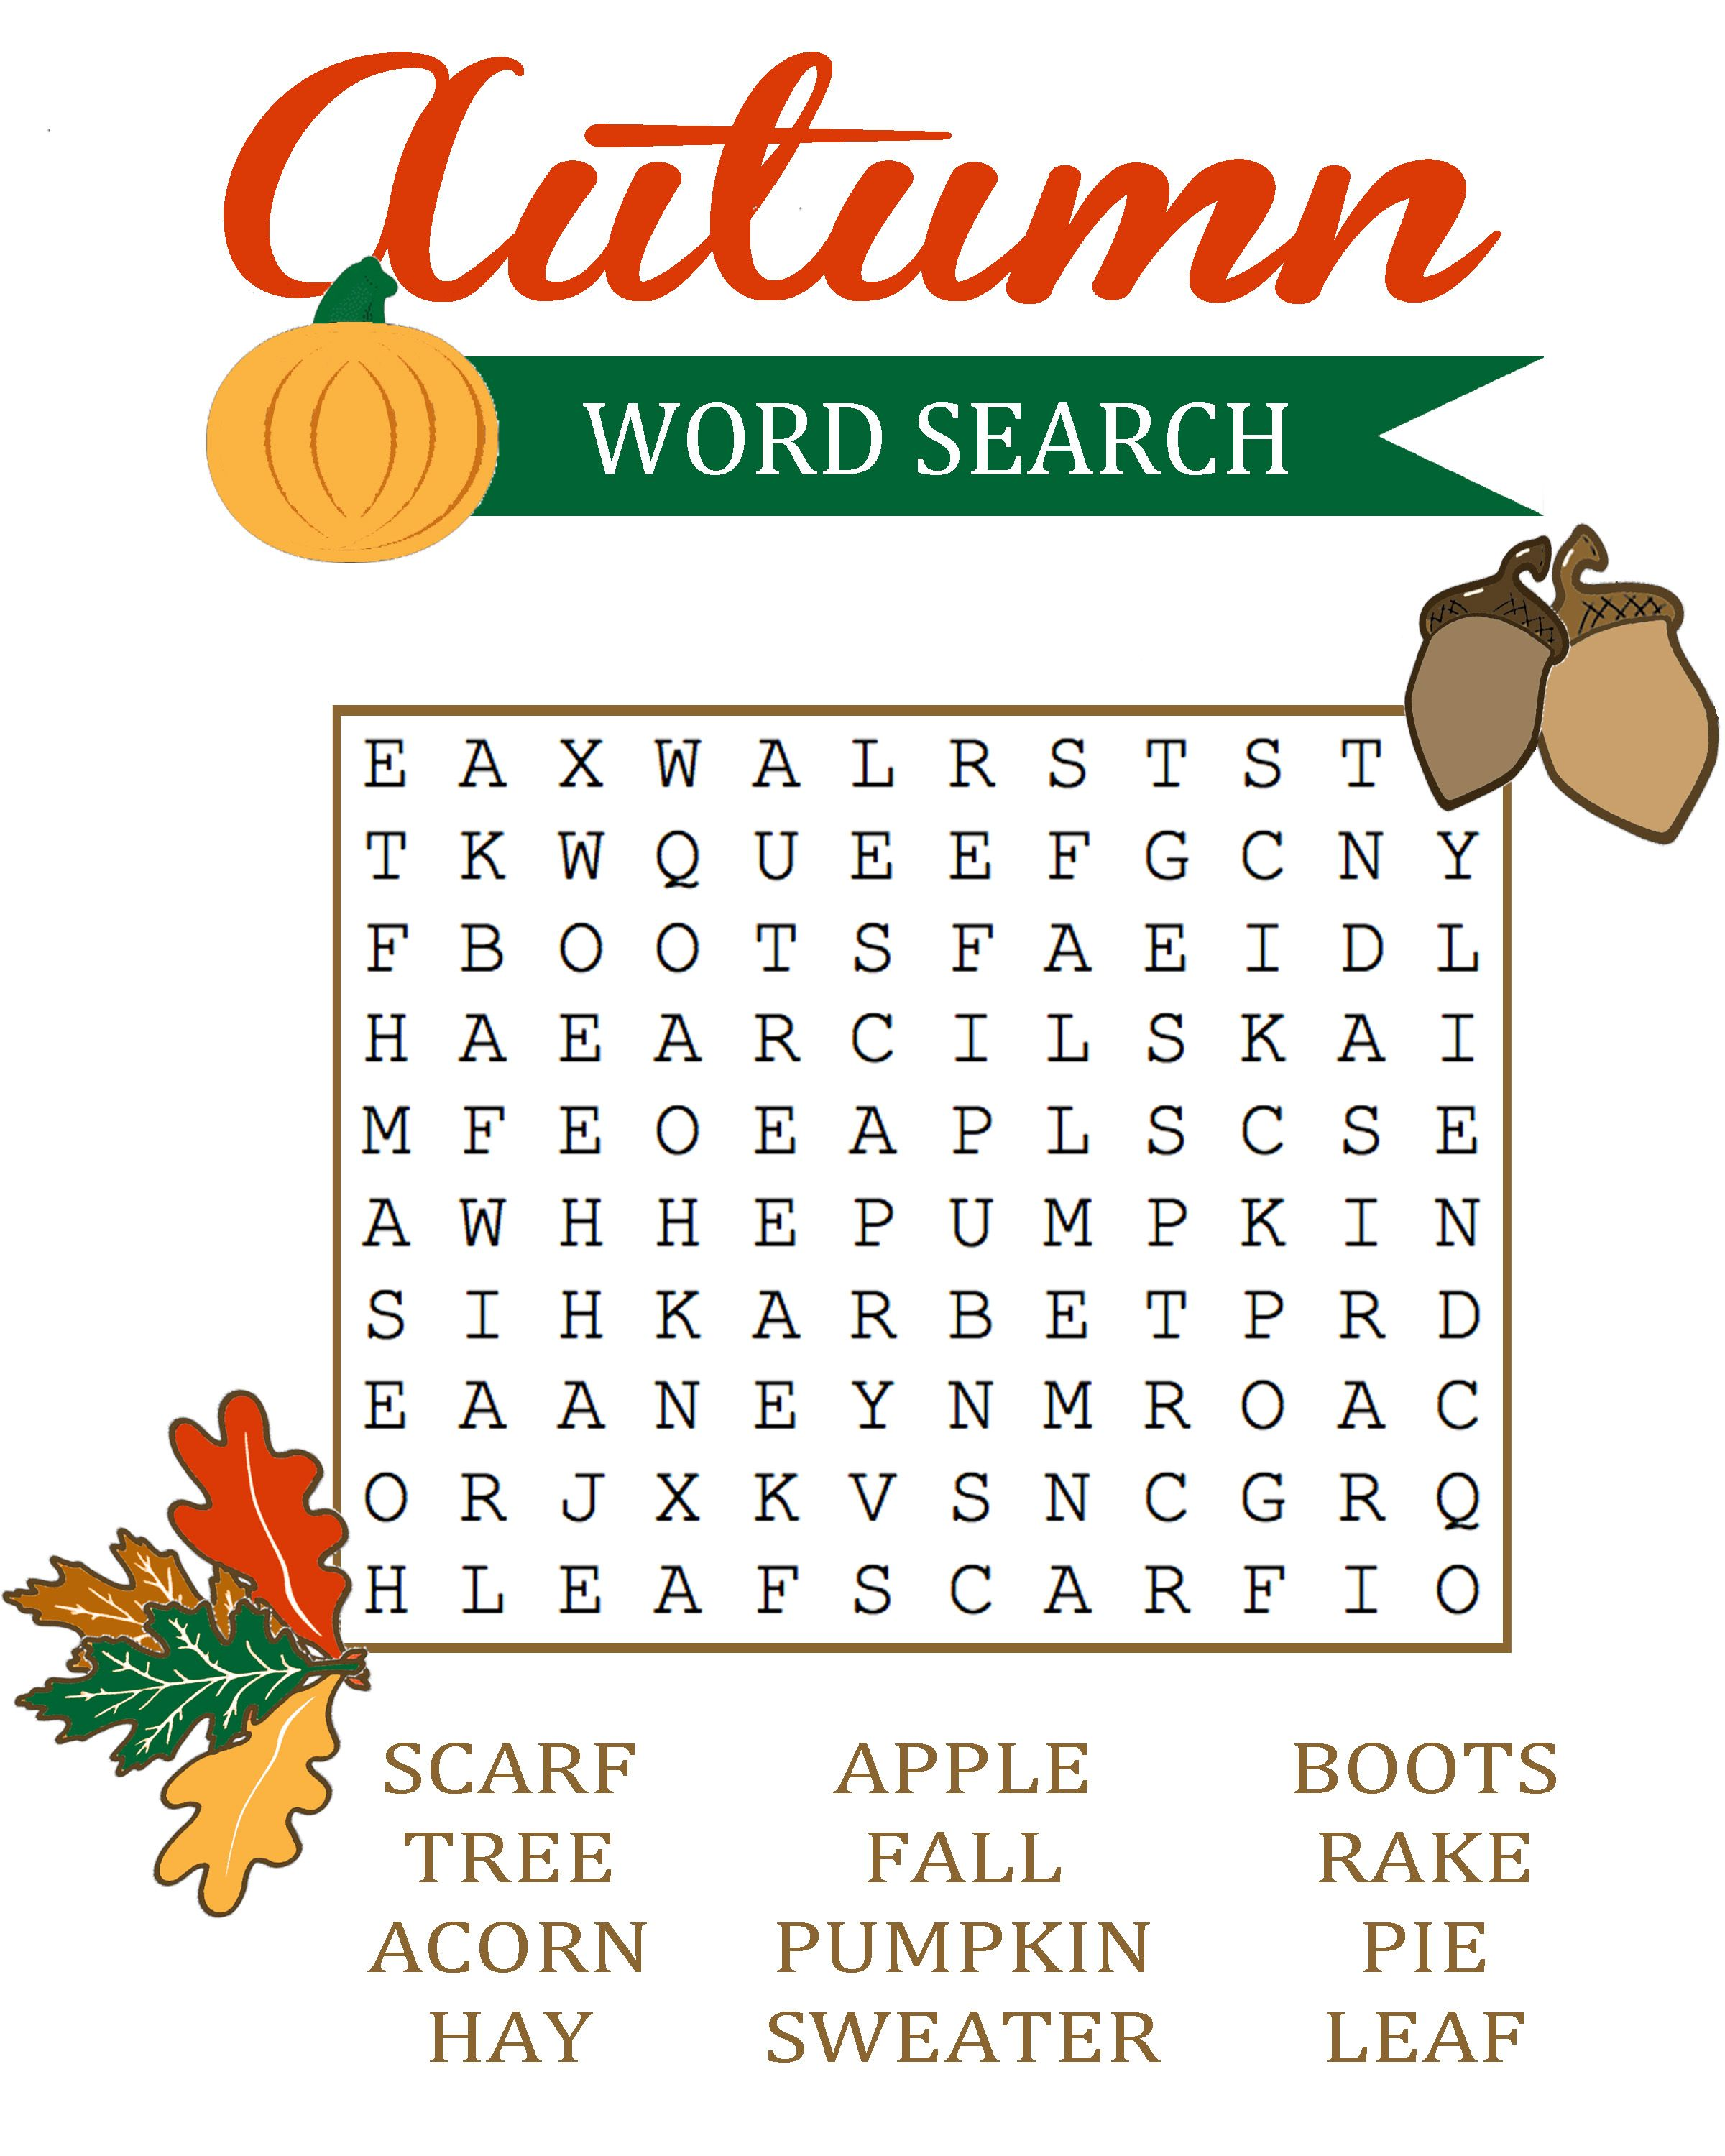 Autumn Word Search 2 400 3 000 Pixels